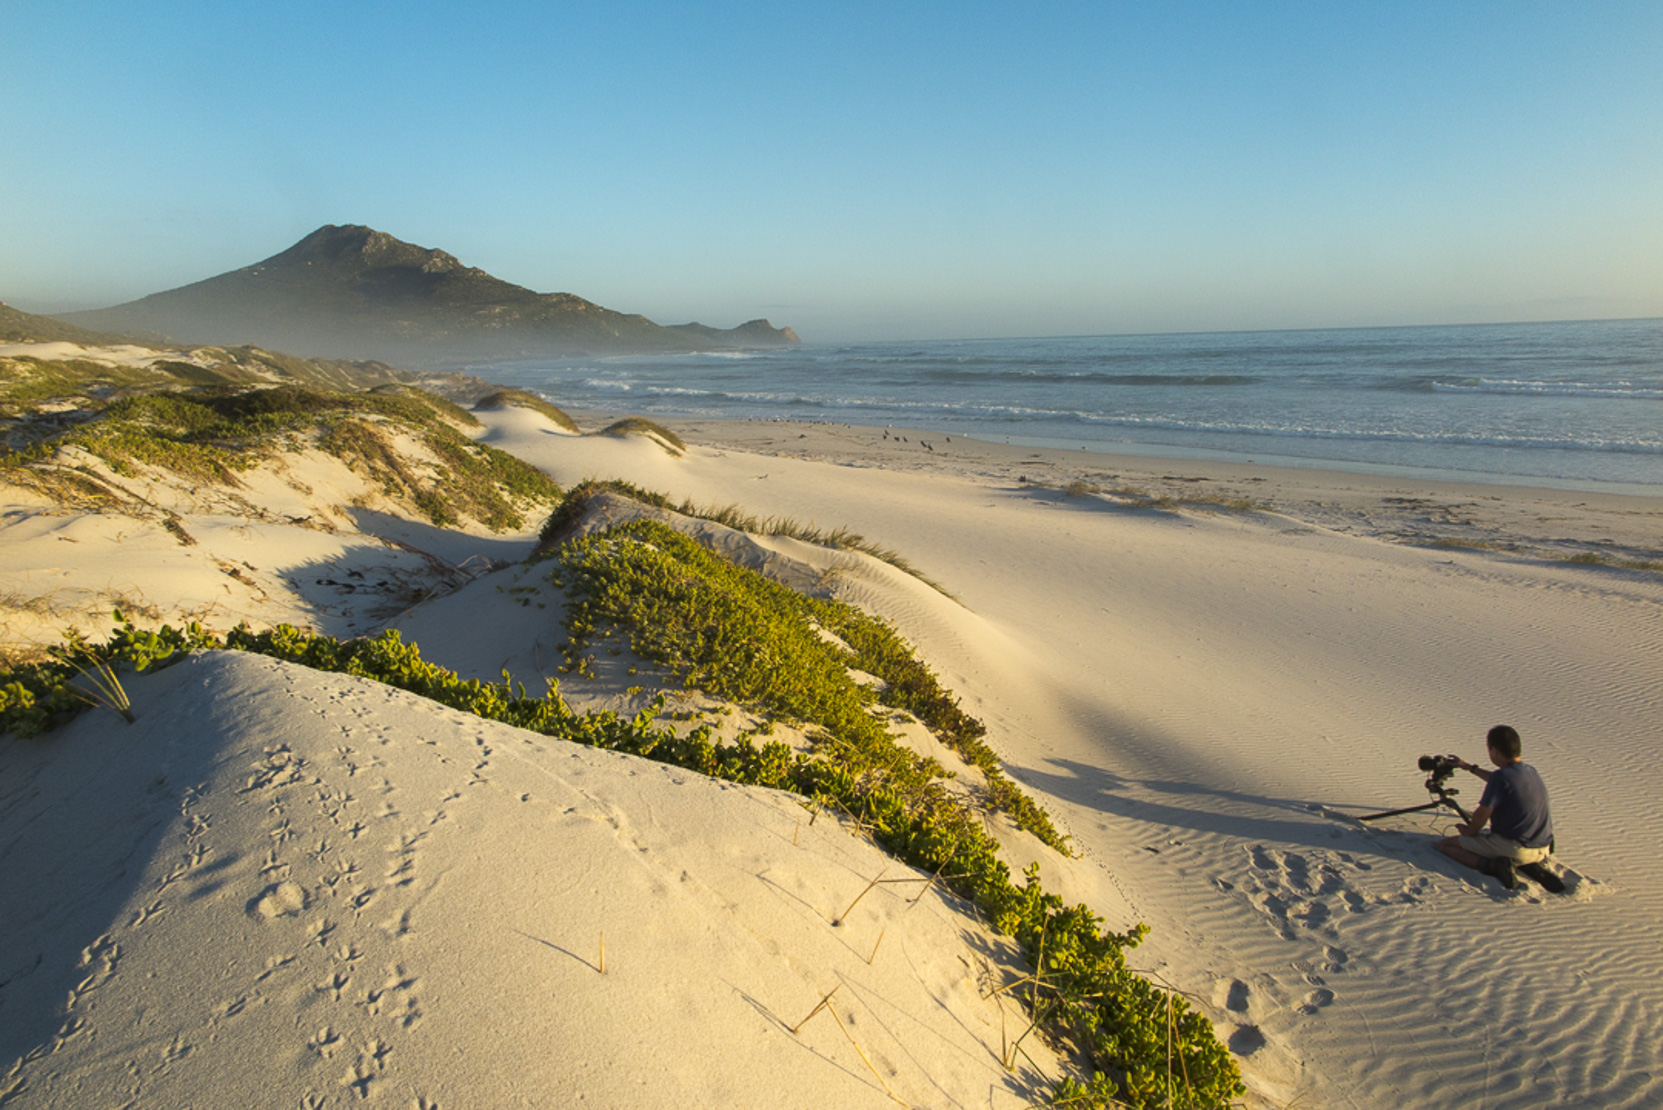 On Platboom Beach and the Cape of Good Hope, Cape Point, South Africa